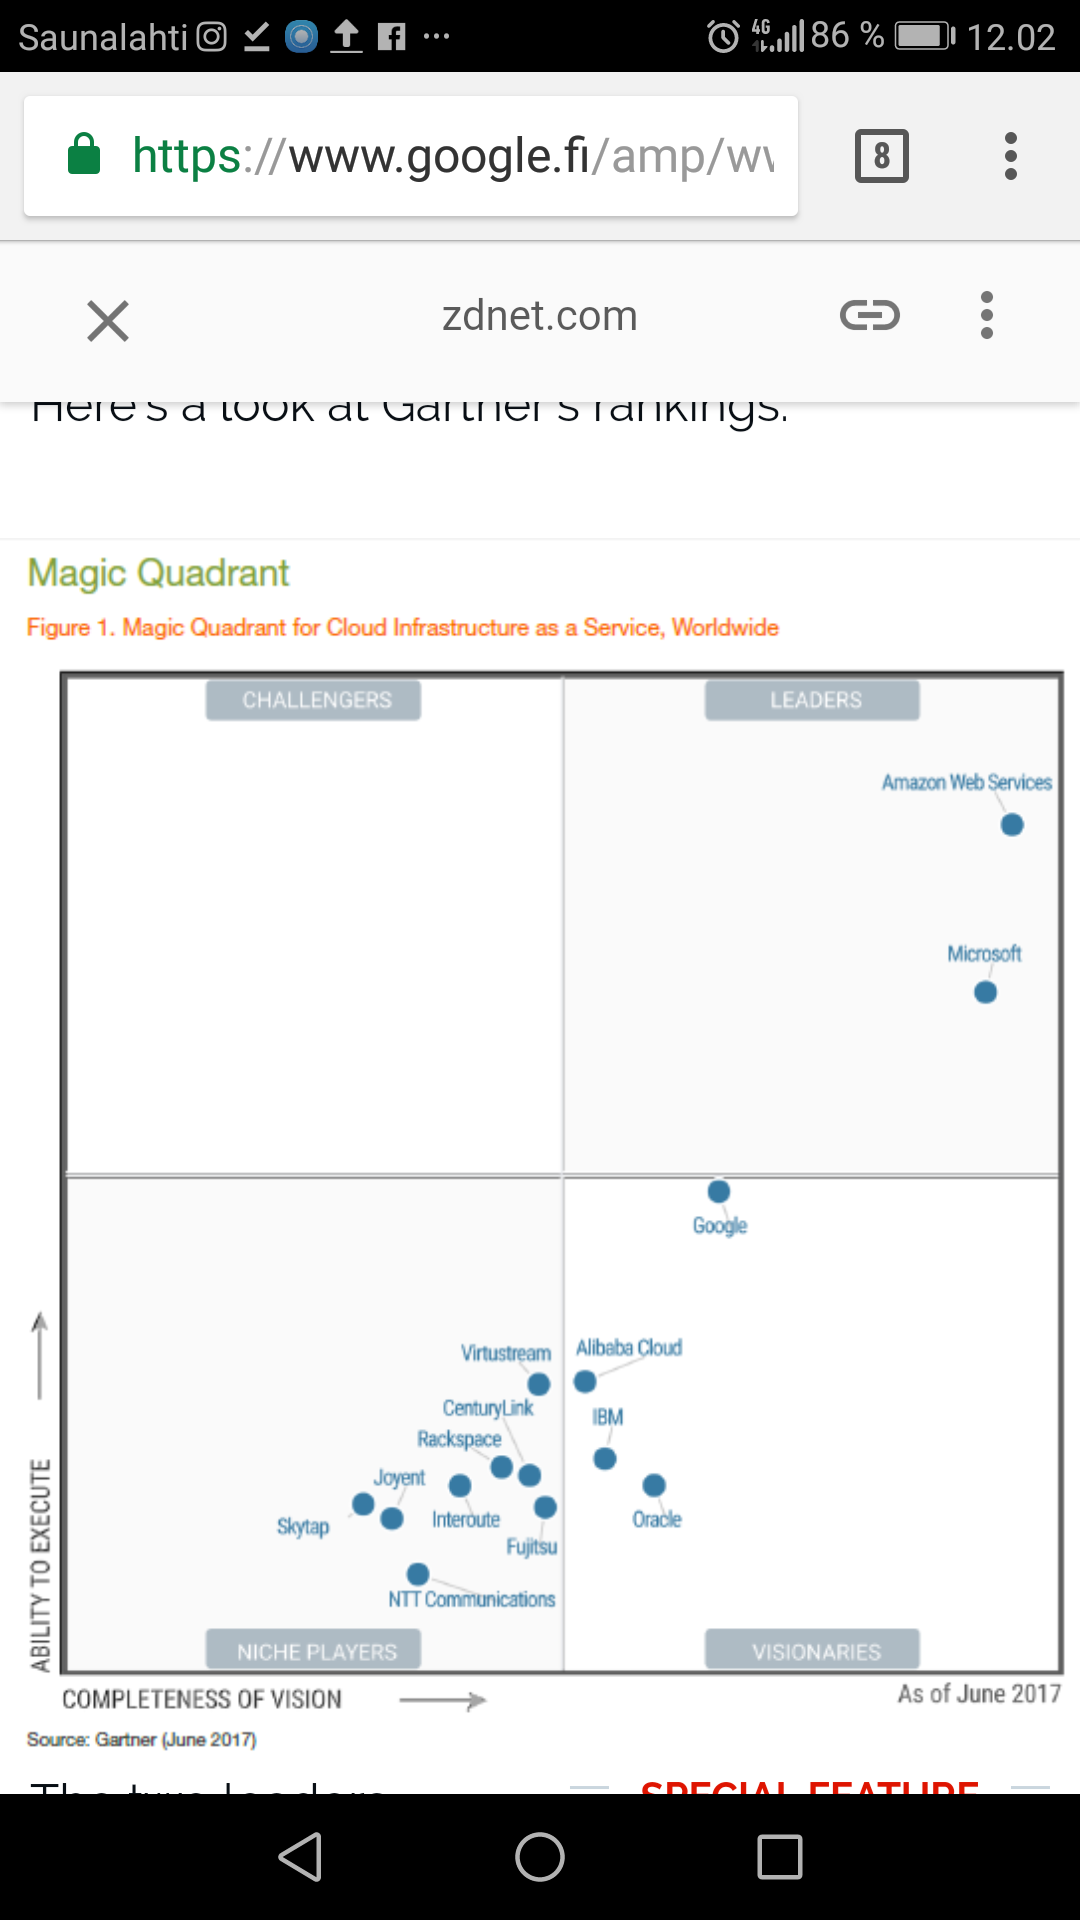 Gartner Magic Quadrant for Cloud IaaS 2017 |